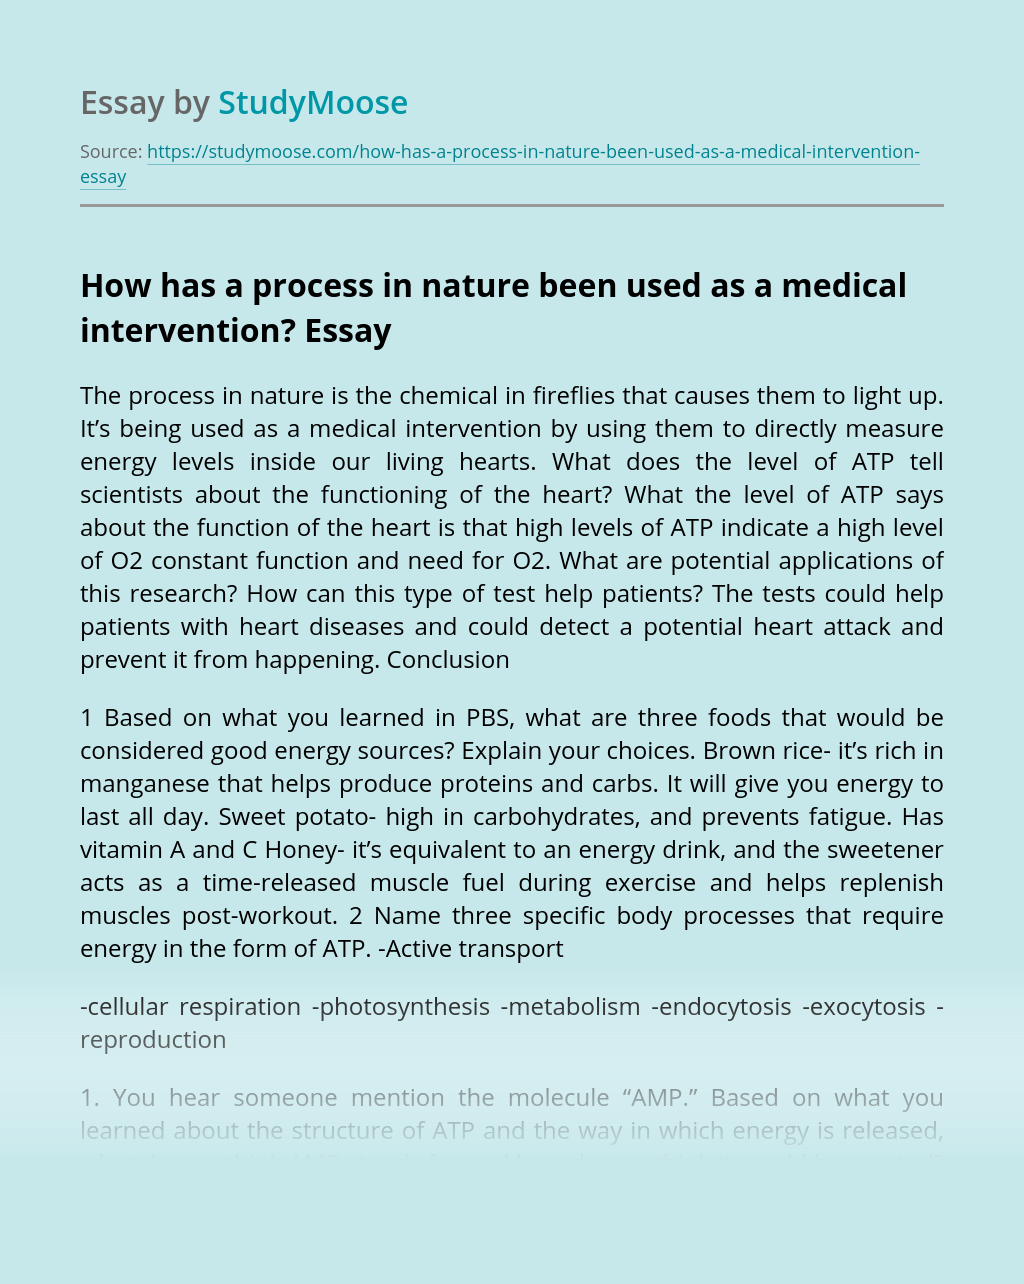 How has a process in nature been used as a medical intervention